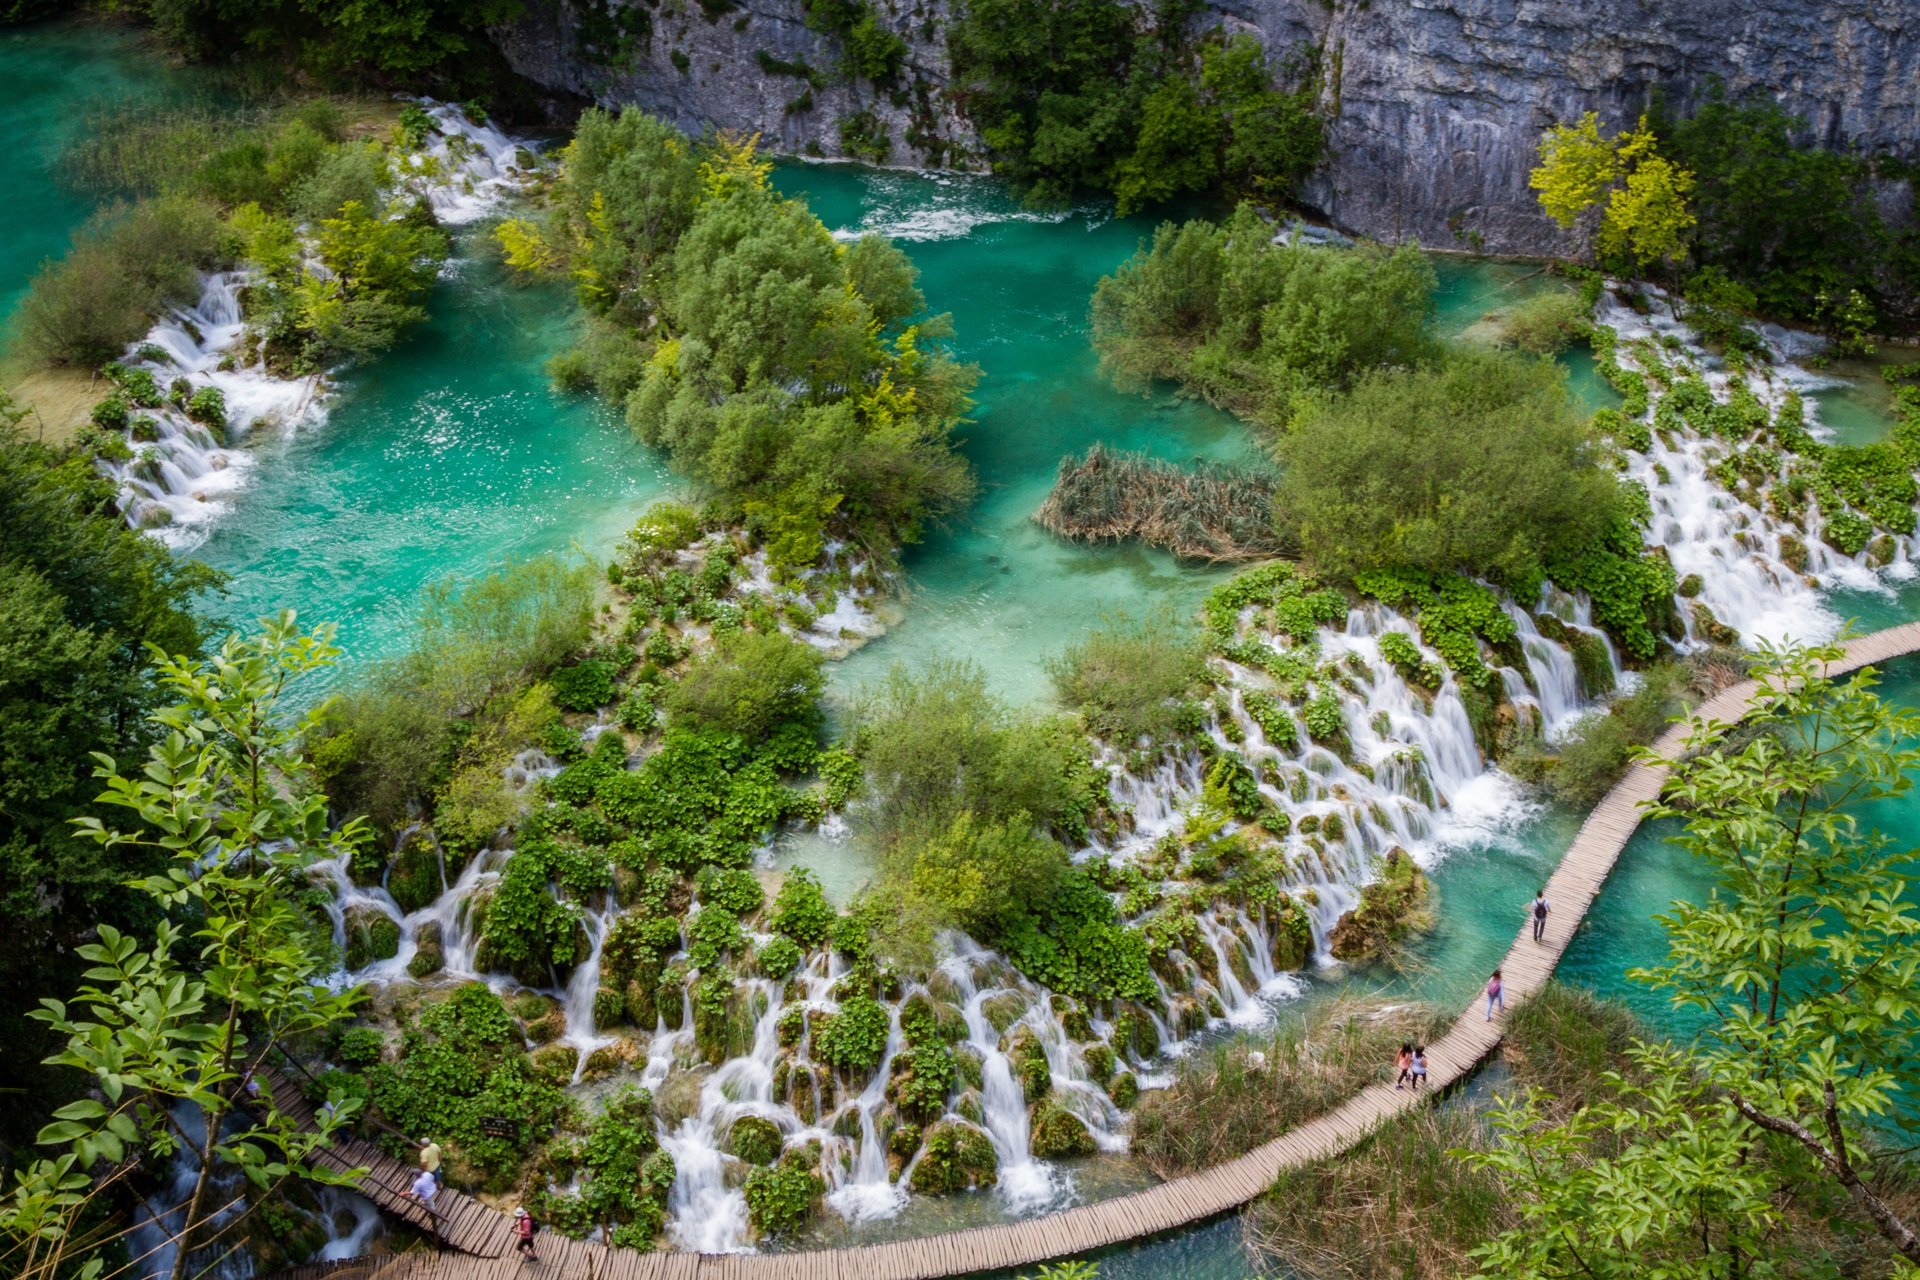 Plitvice Lakes National Park Croatia Background Wallpaper 27352 1920x1280